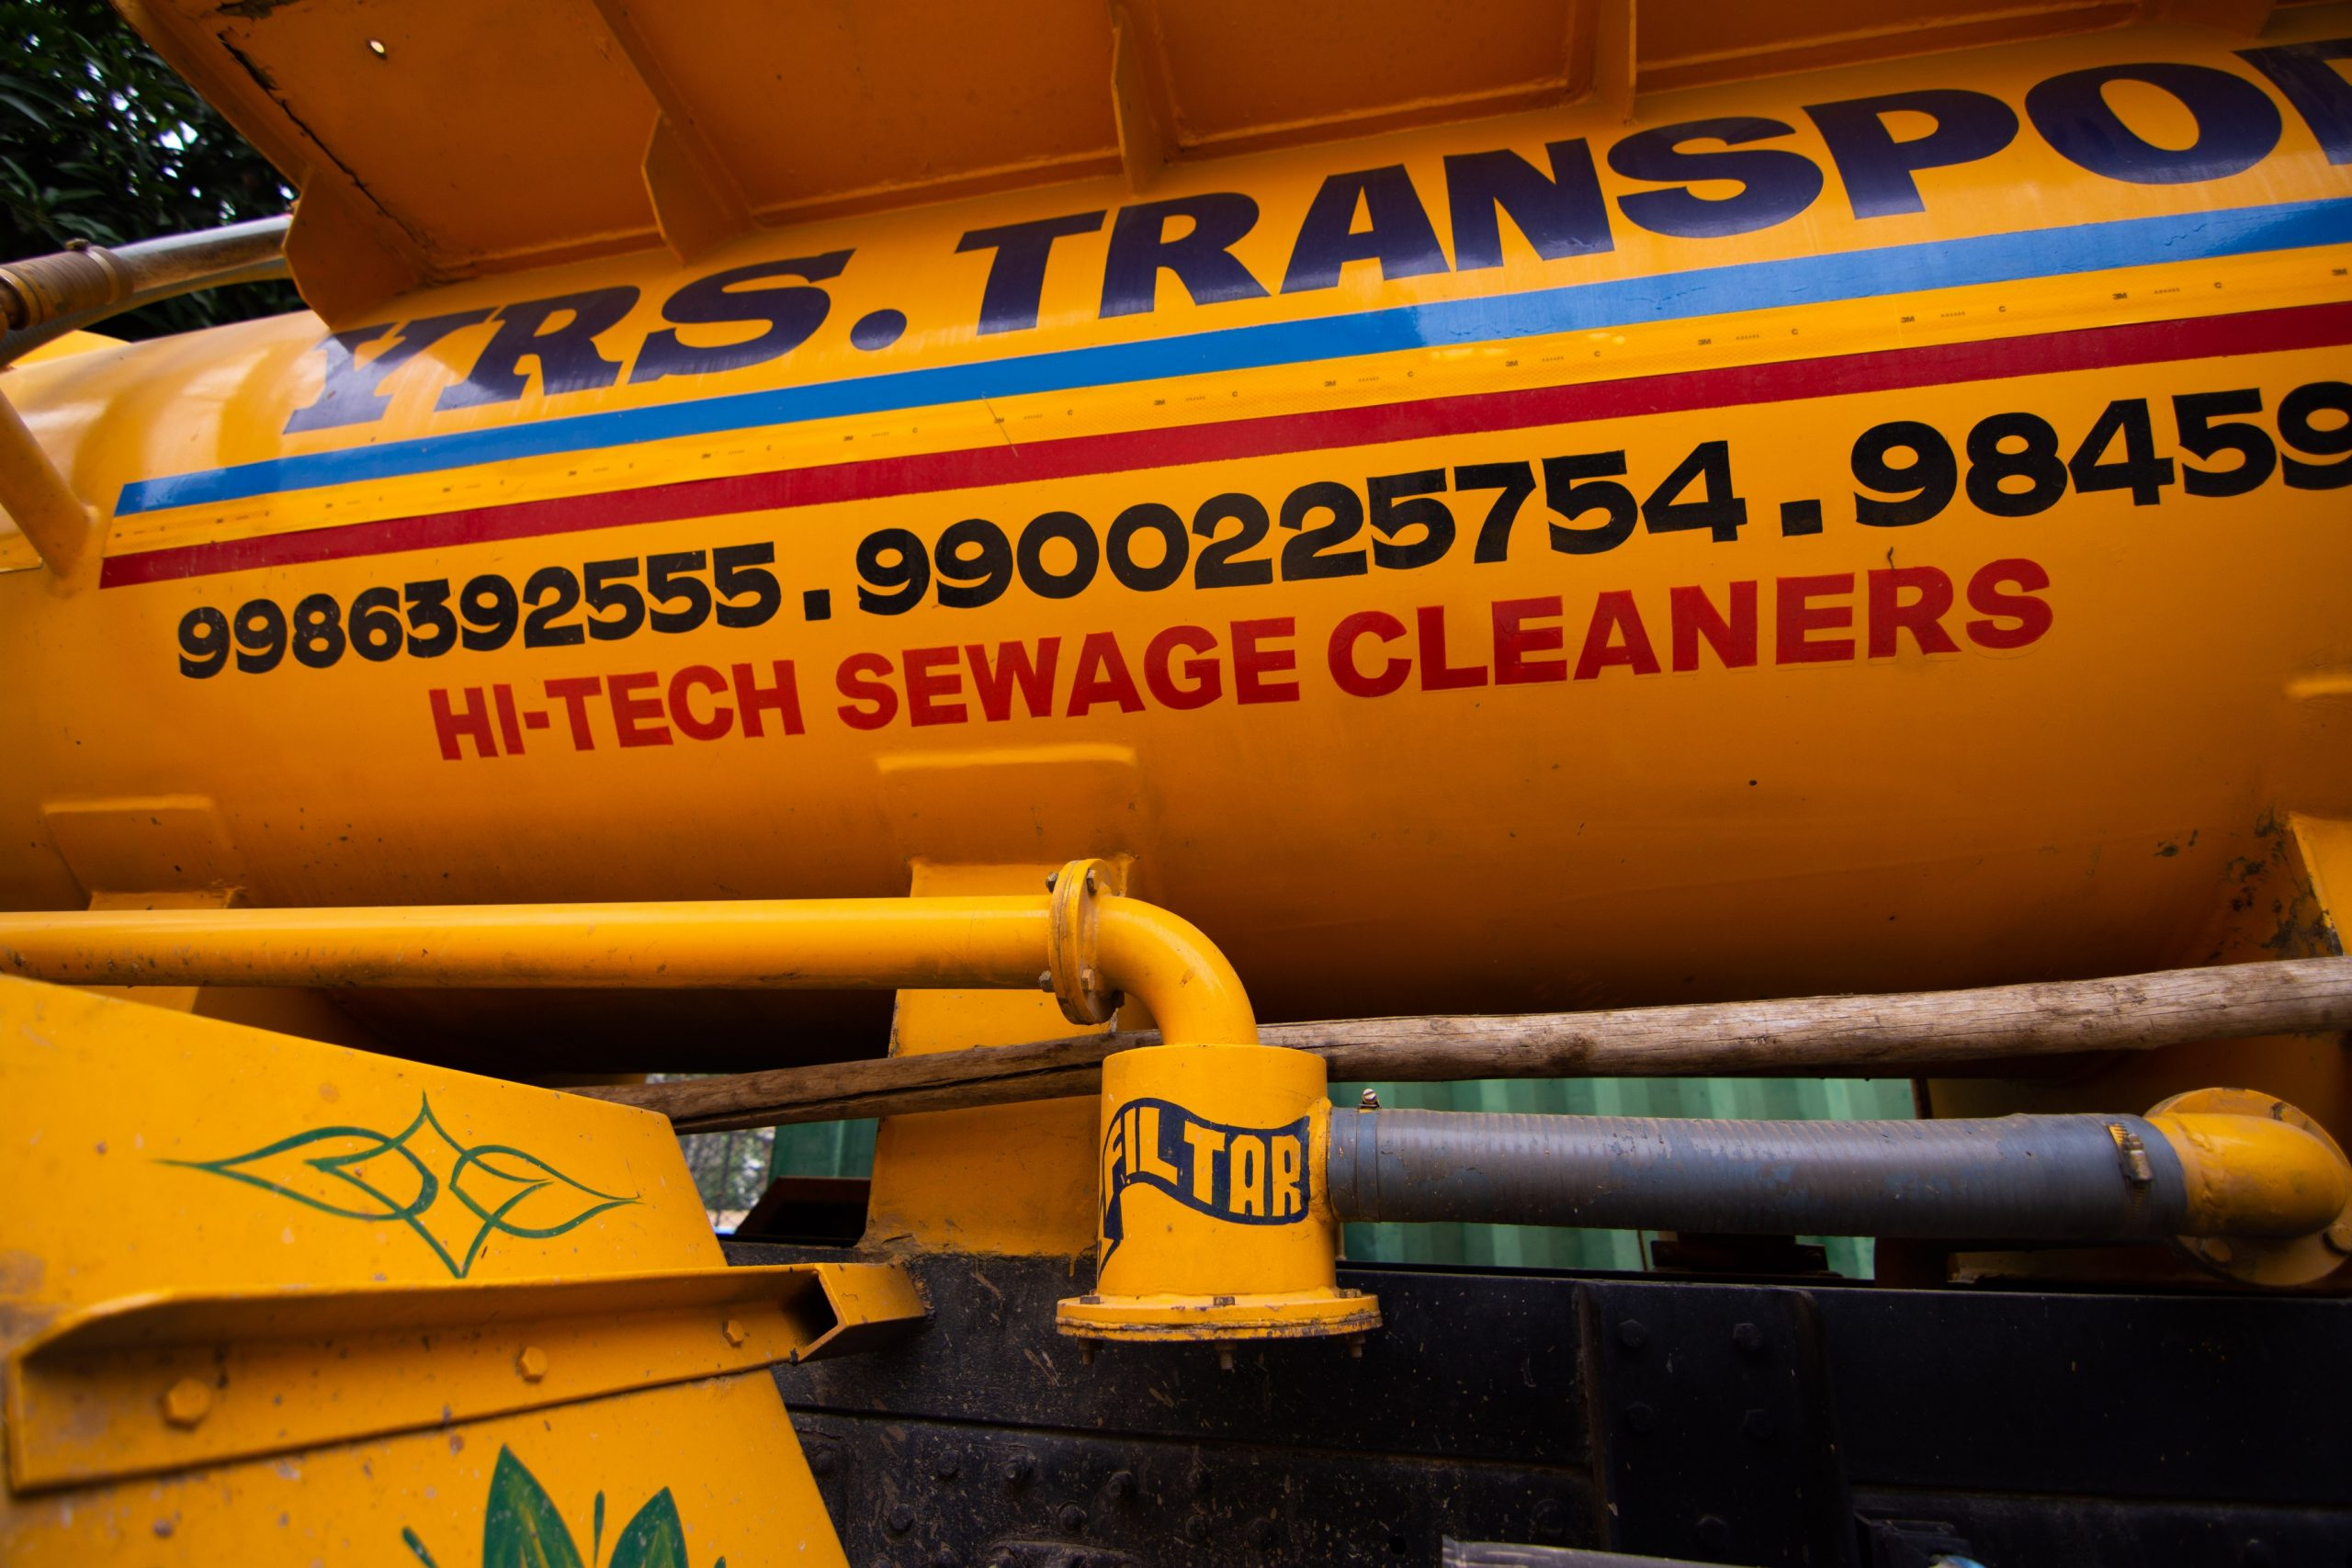 sewage cleaner truck_sanitation workers_epw